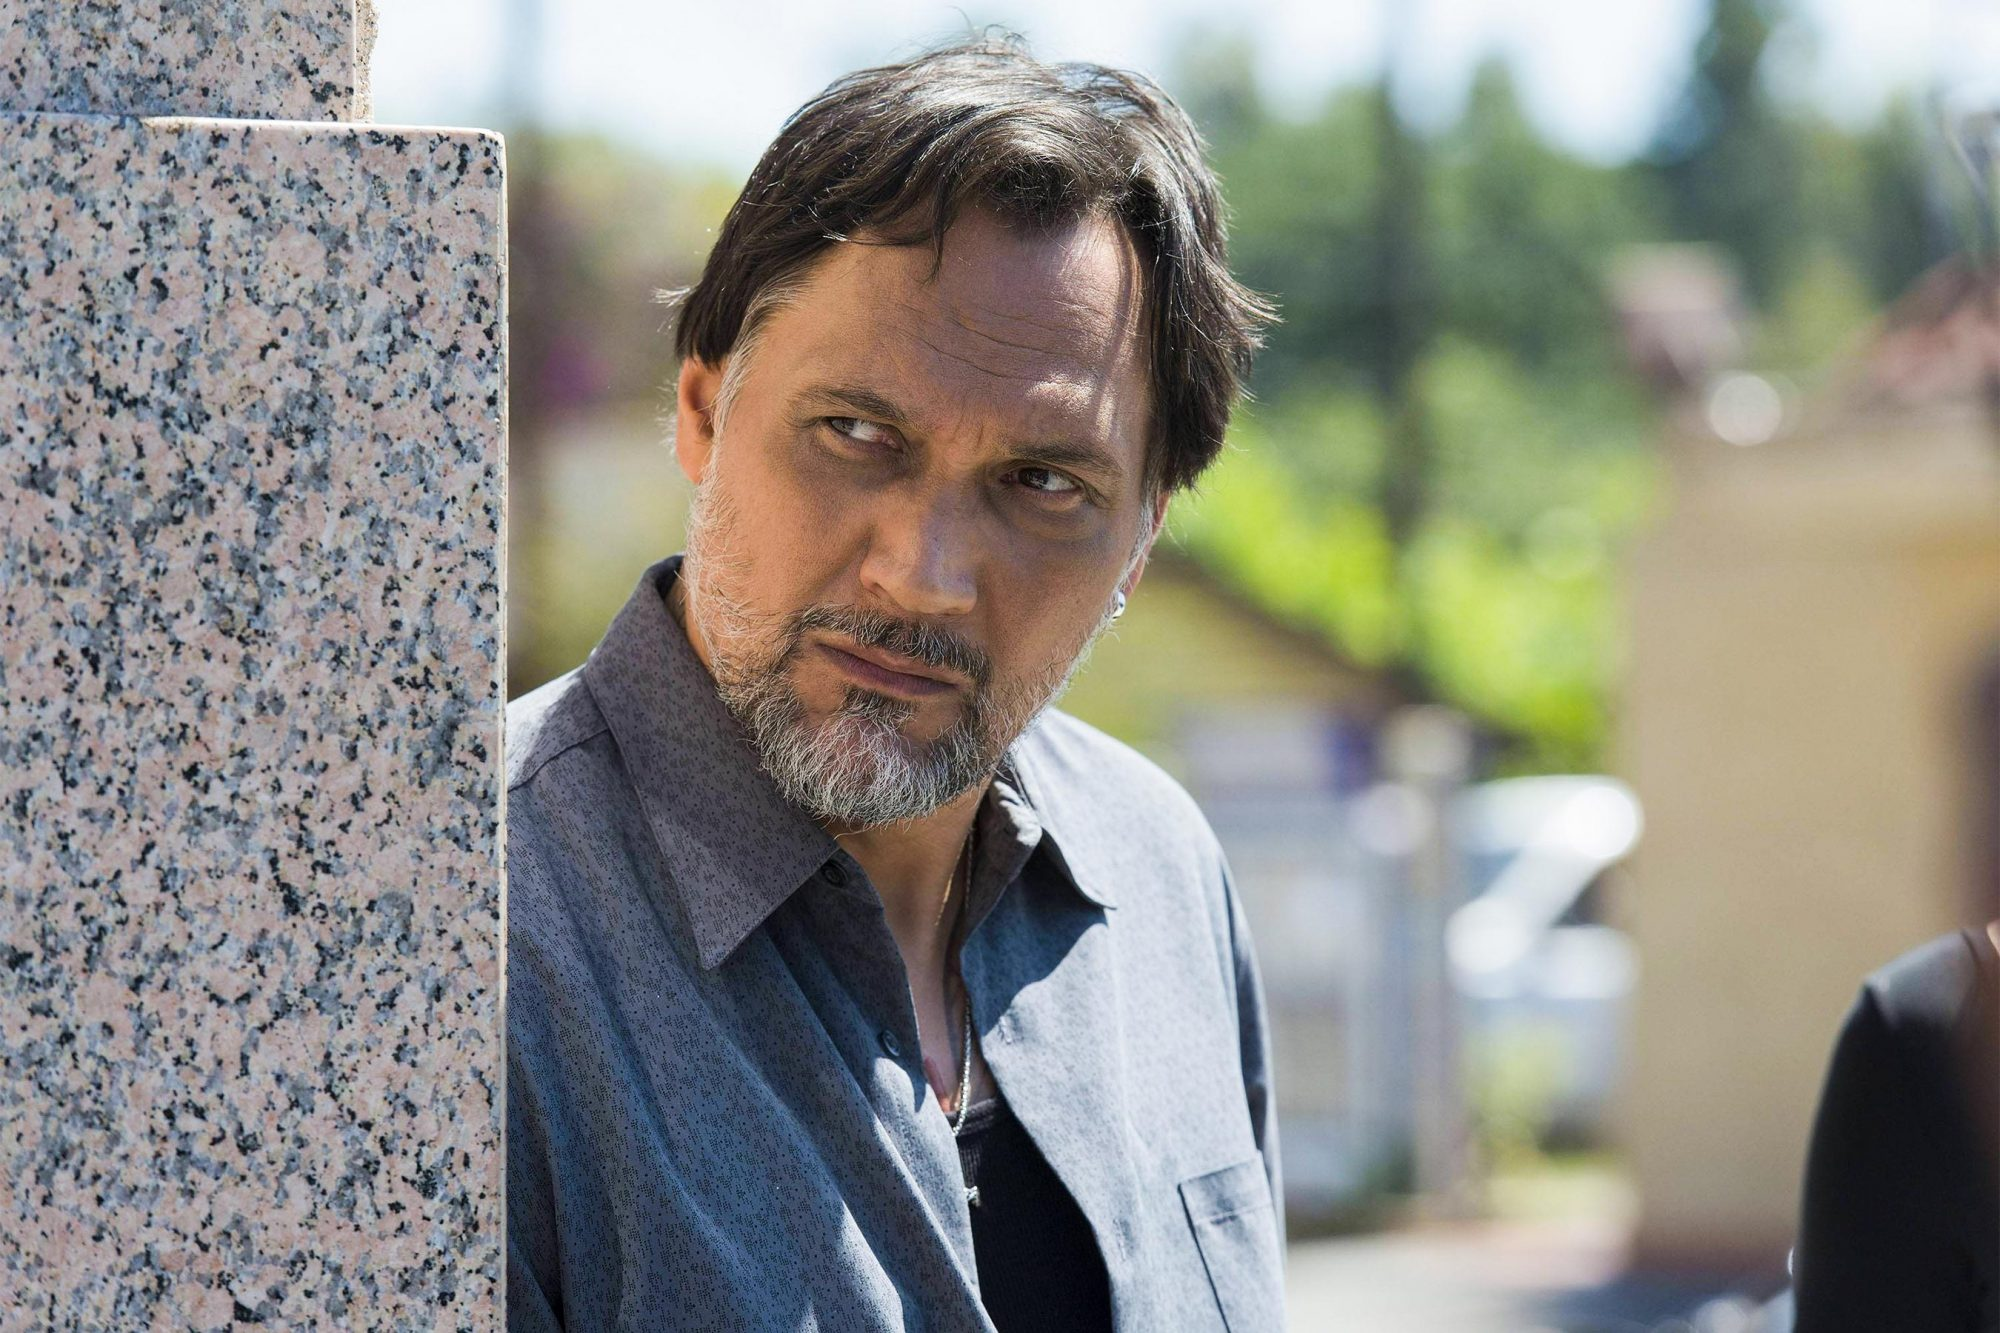 SONS OF ANARCHY Poenitentia -- Episode 603 -- Airs Tuesday, September 24, 10:00 pm e/p) -- Pictured: Jimmy Smits as Nero Padilla -- CR: Prashant Gupta/FX